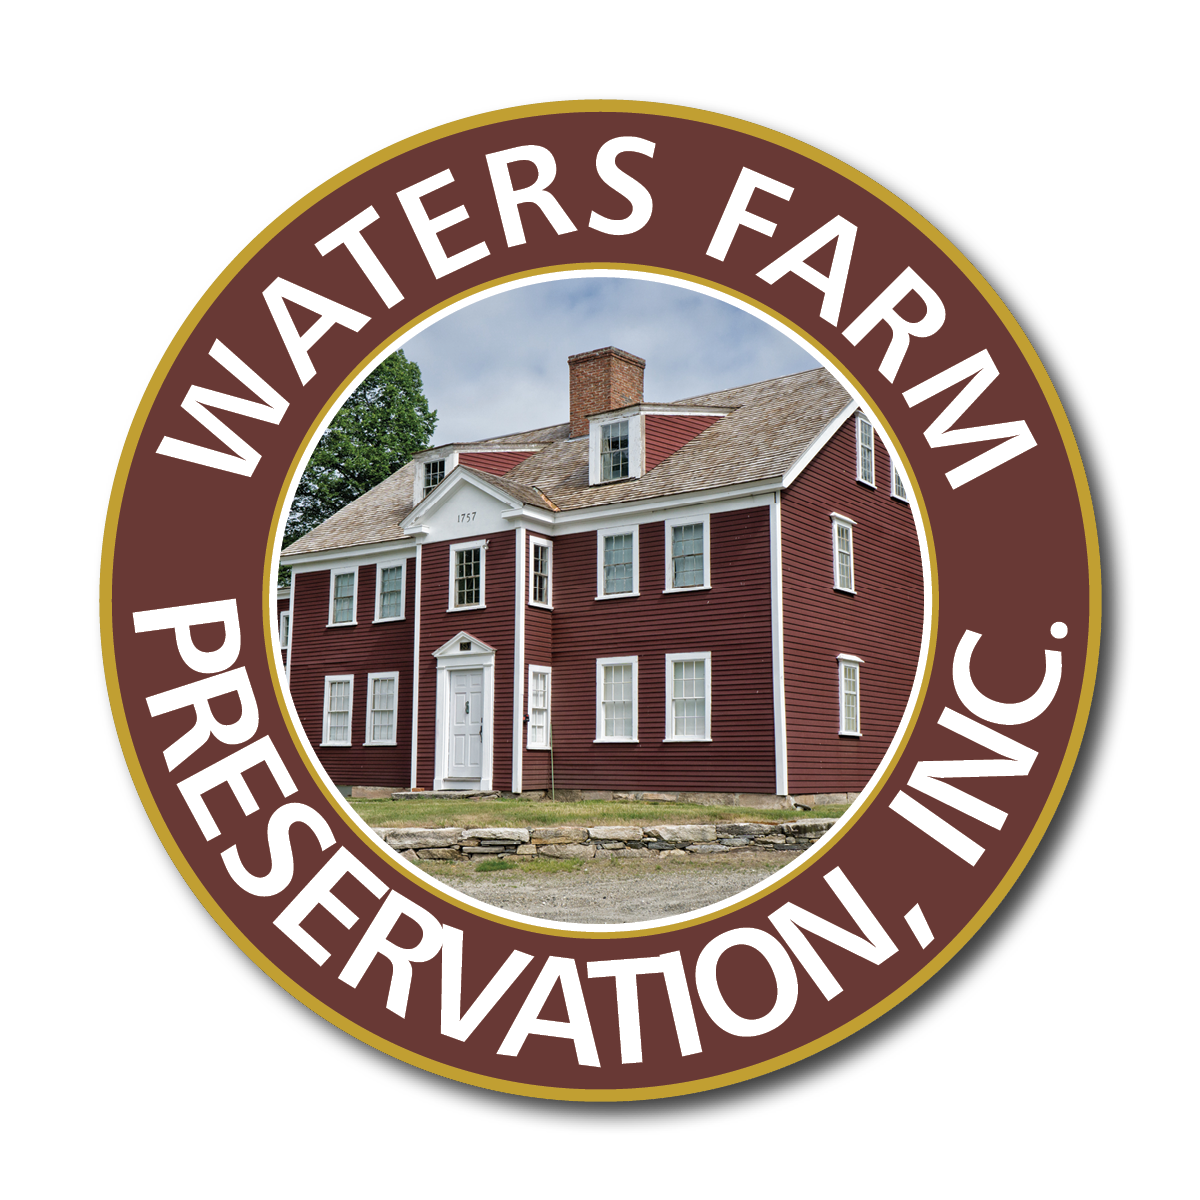 WATERS FARM